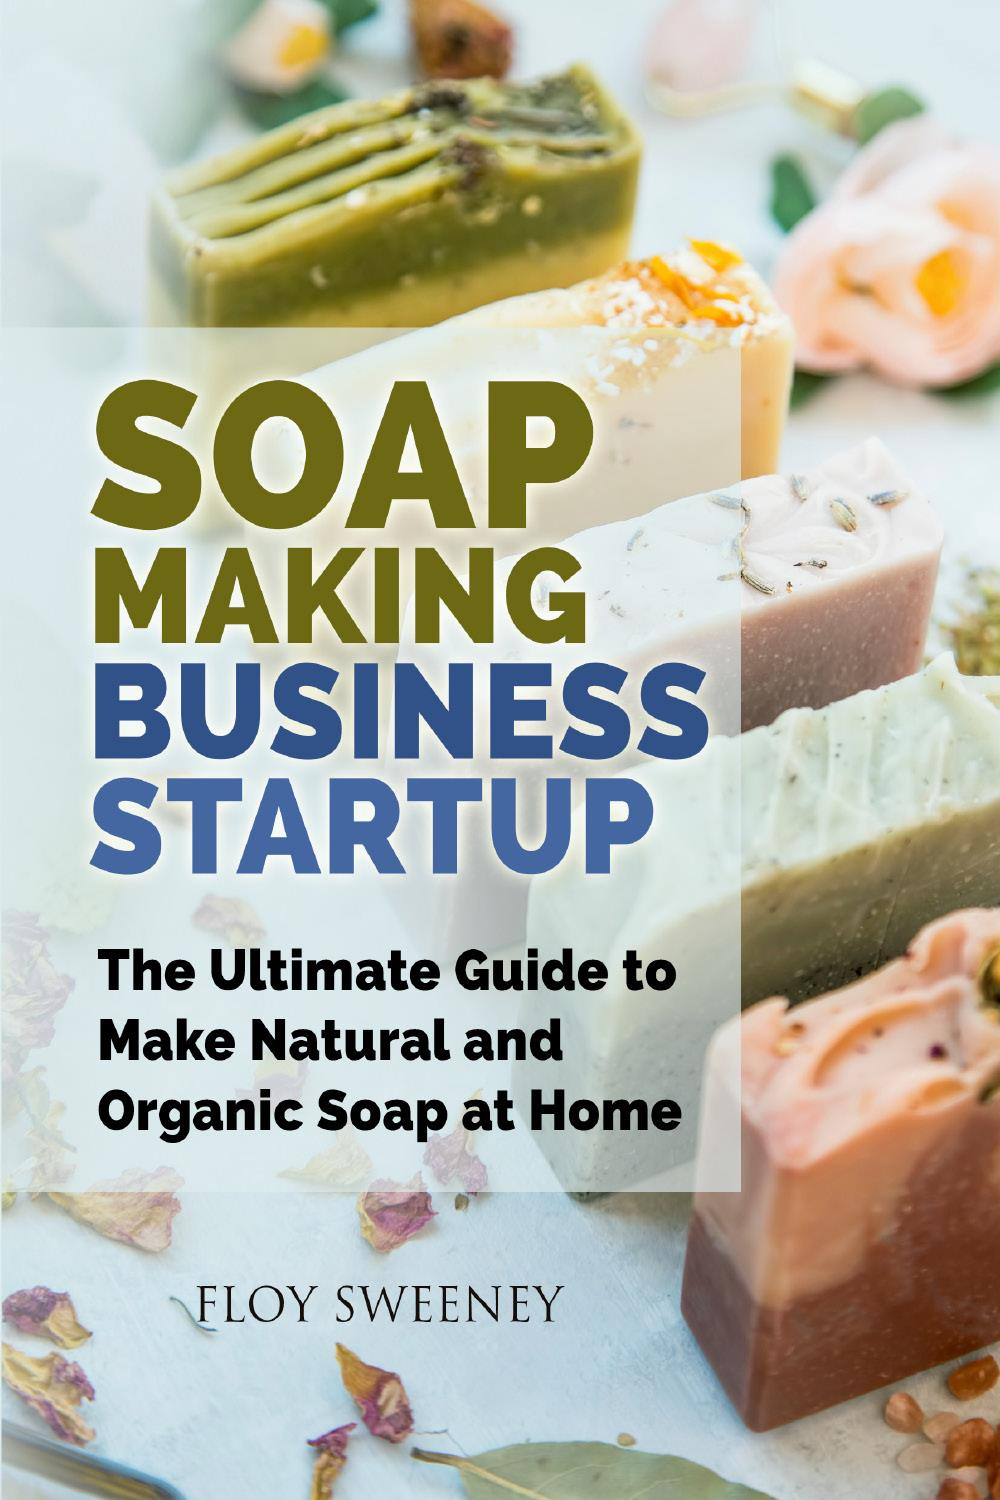 Soap Making Business Startup. The Ultimate Guide to Make Natural and Organic Soap at Home